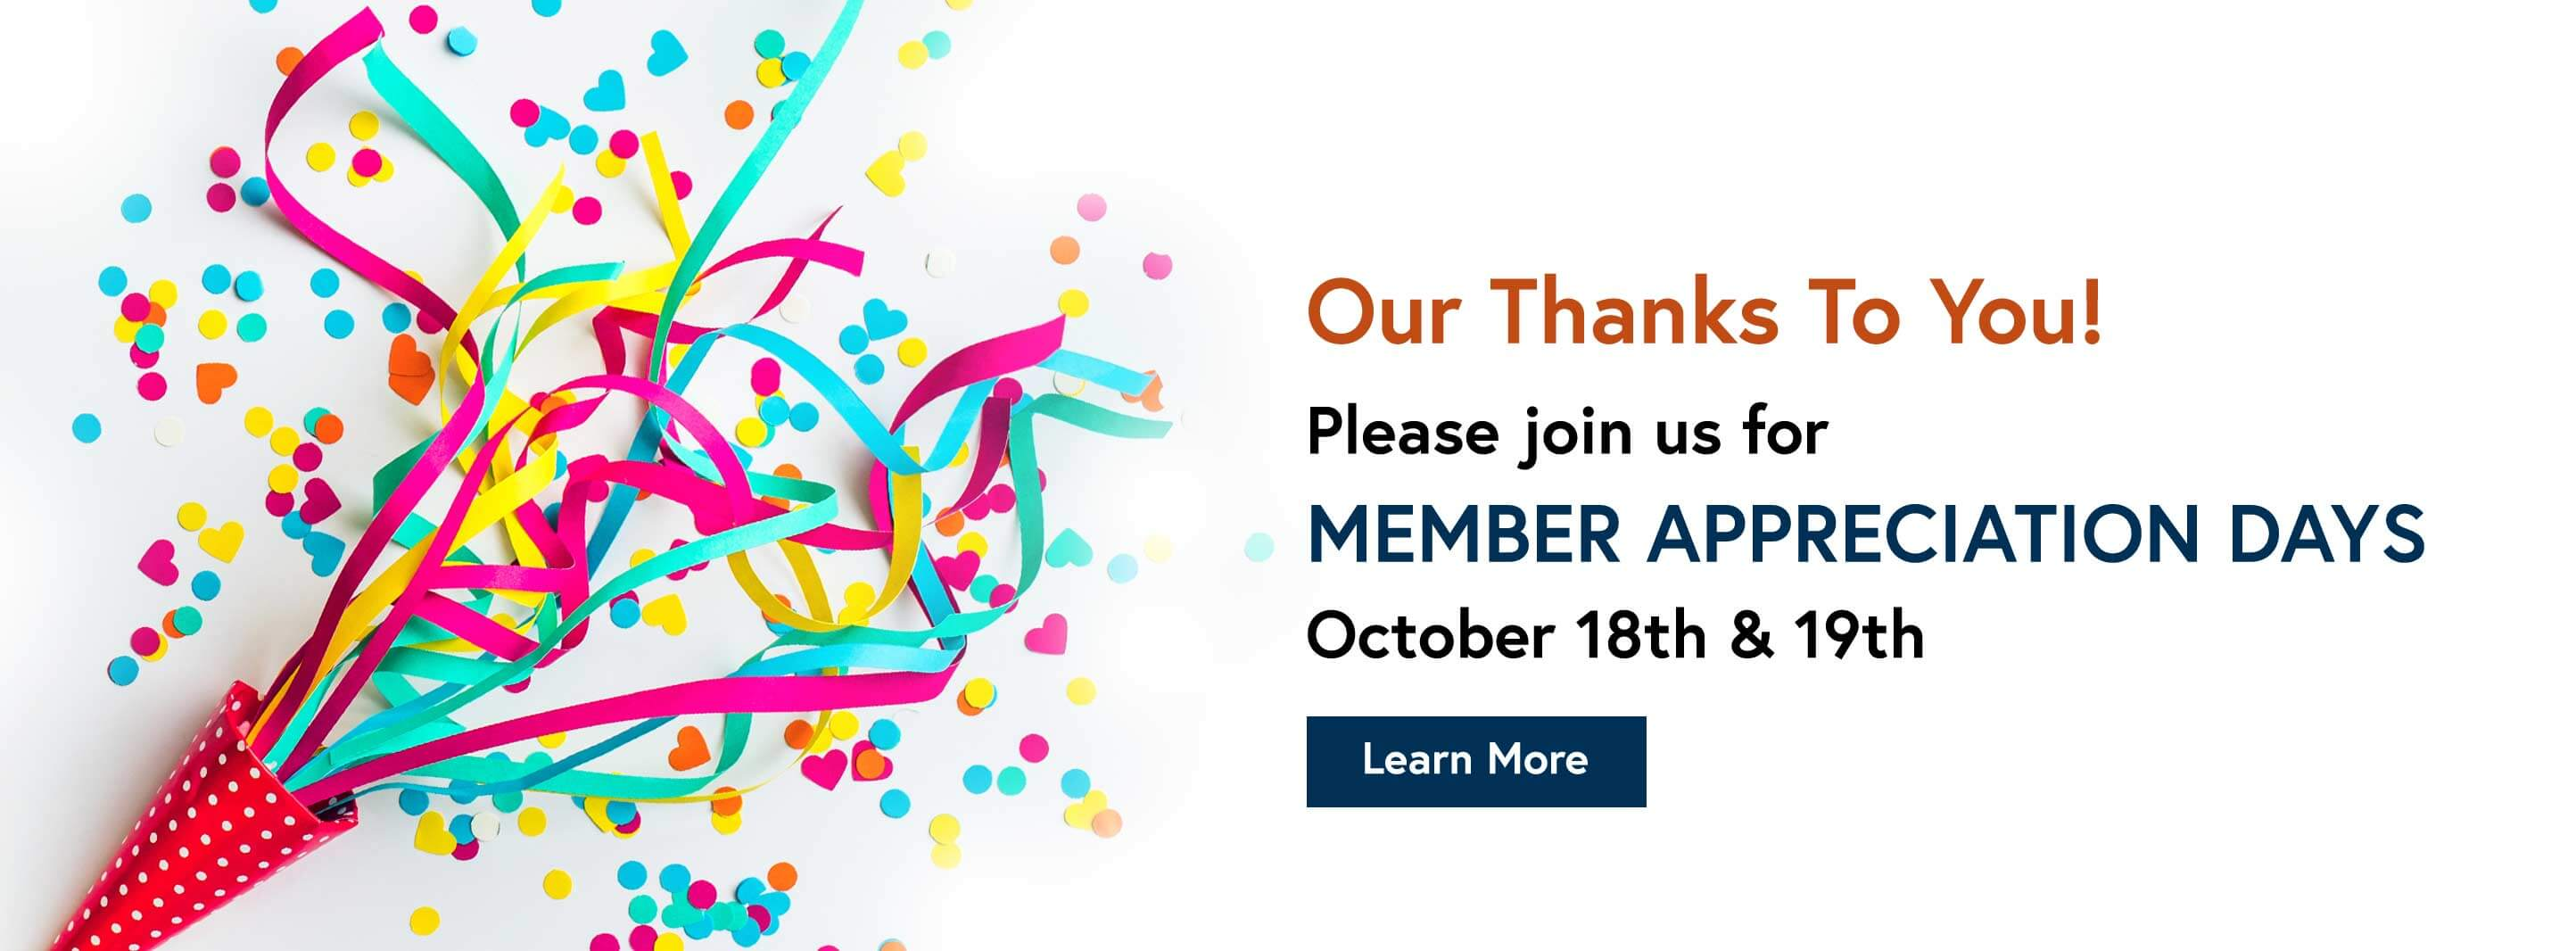 Our thanks to you! Please join us for Member appreciation Days October 18 & 19 - Learn More